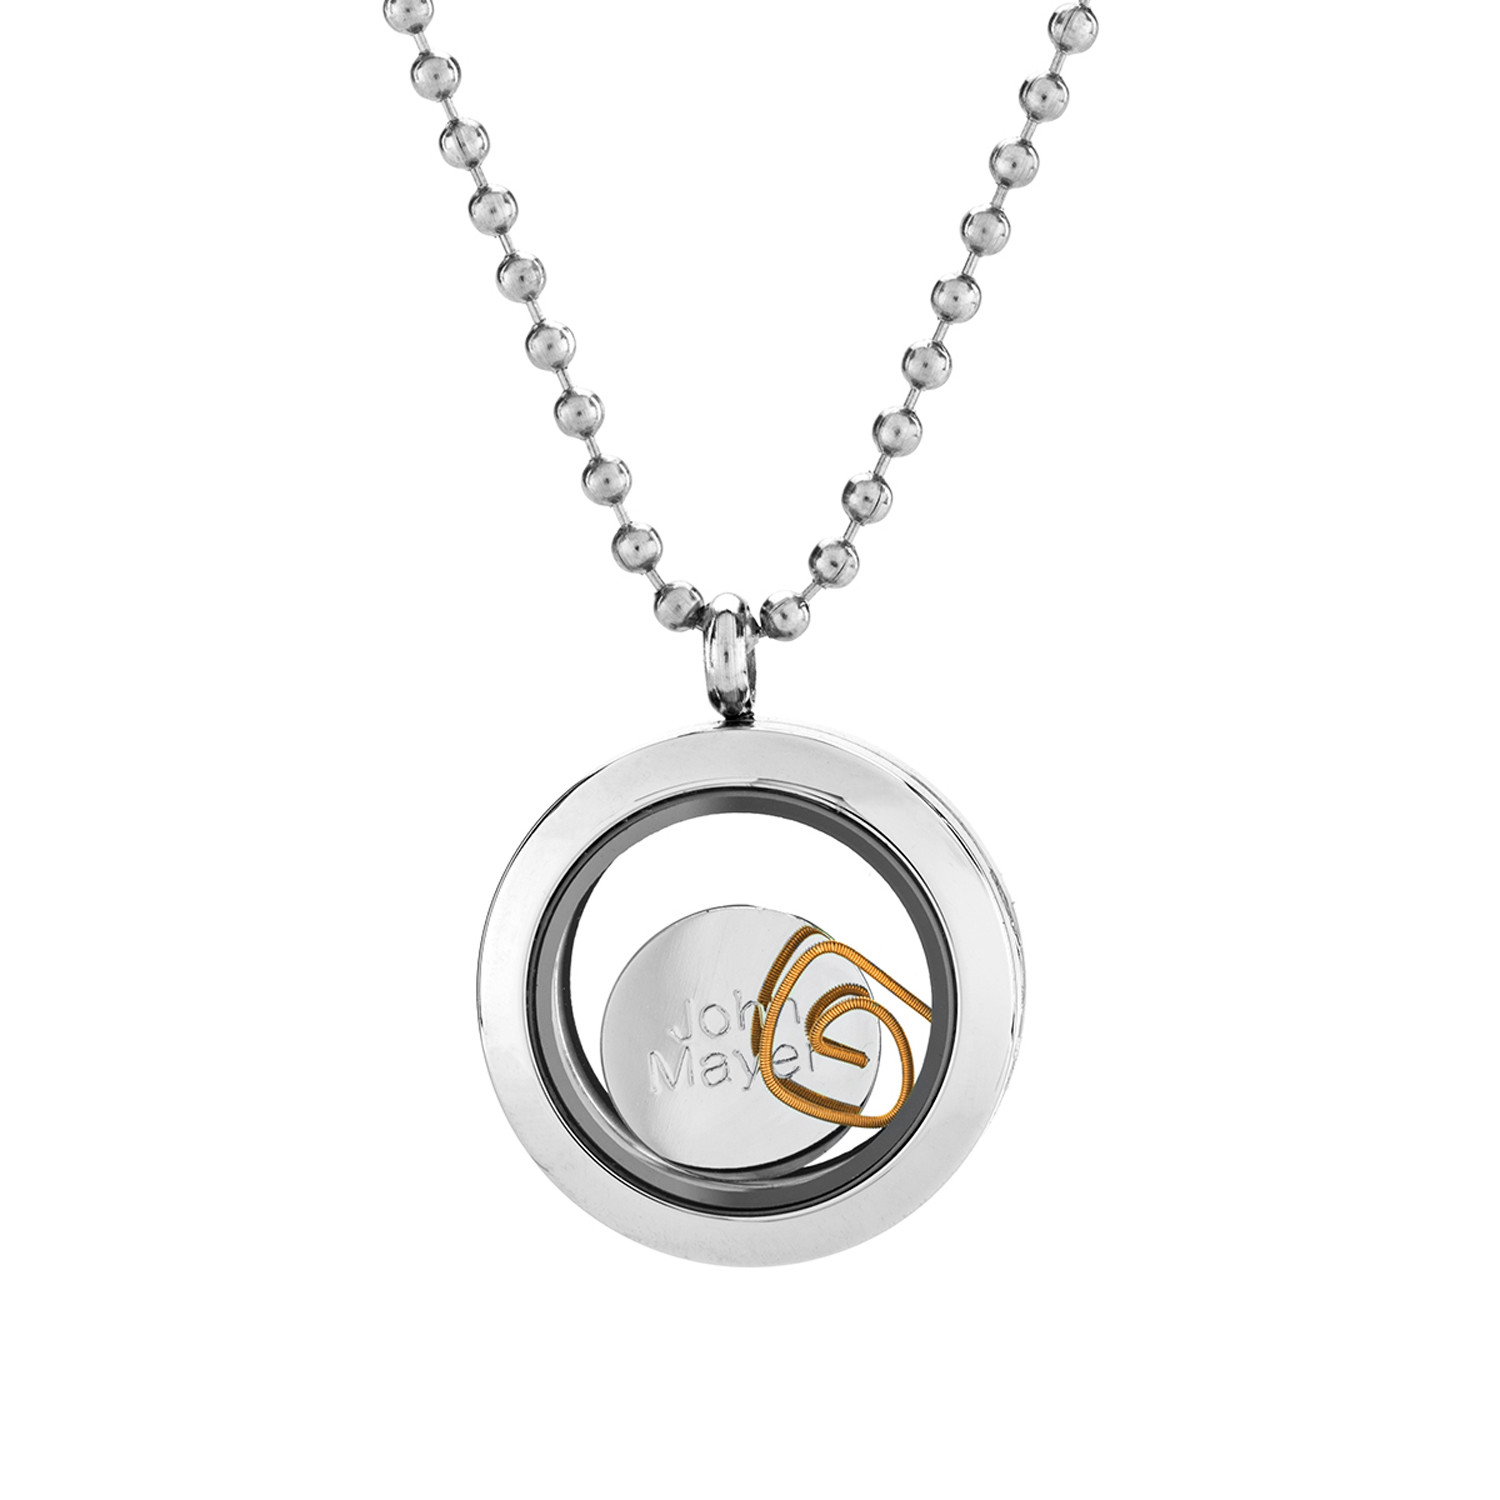 product cgc free overstock music pendant orders silver over necklace on box symbol clef white shipping jewelry chain inch sterling watches g note